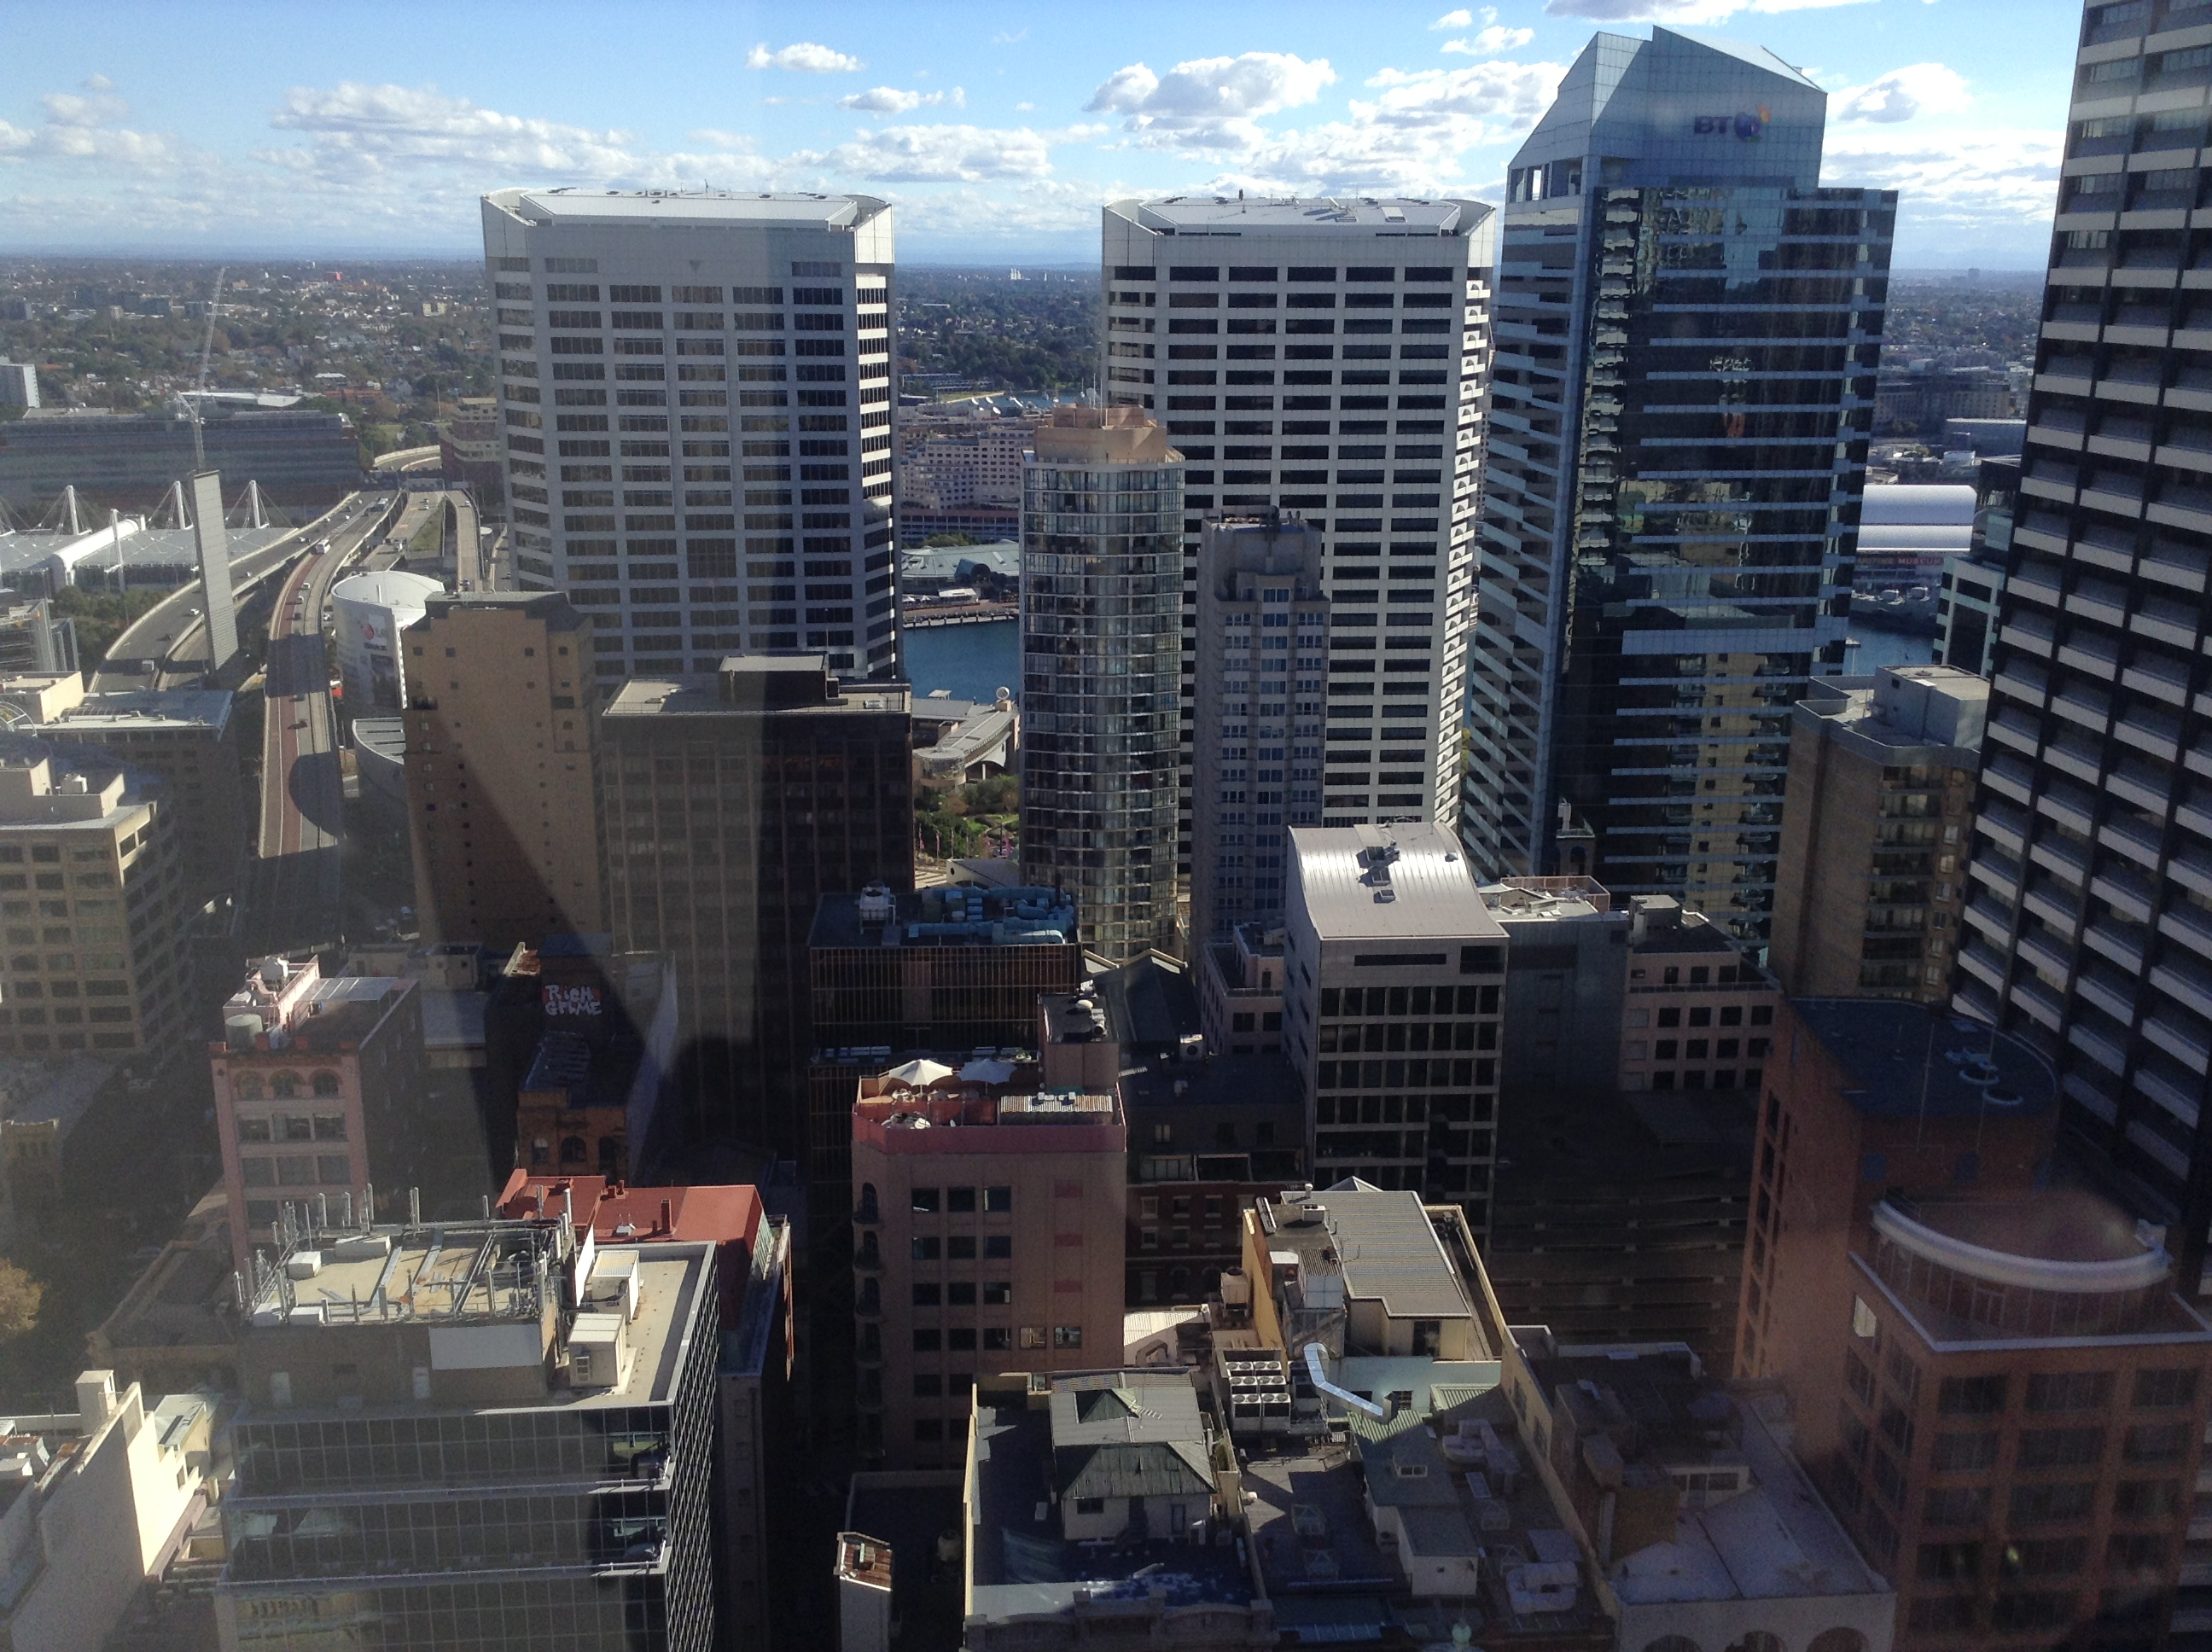 Looking west across Sydney from a 36th floor downtown